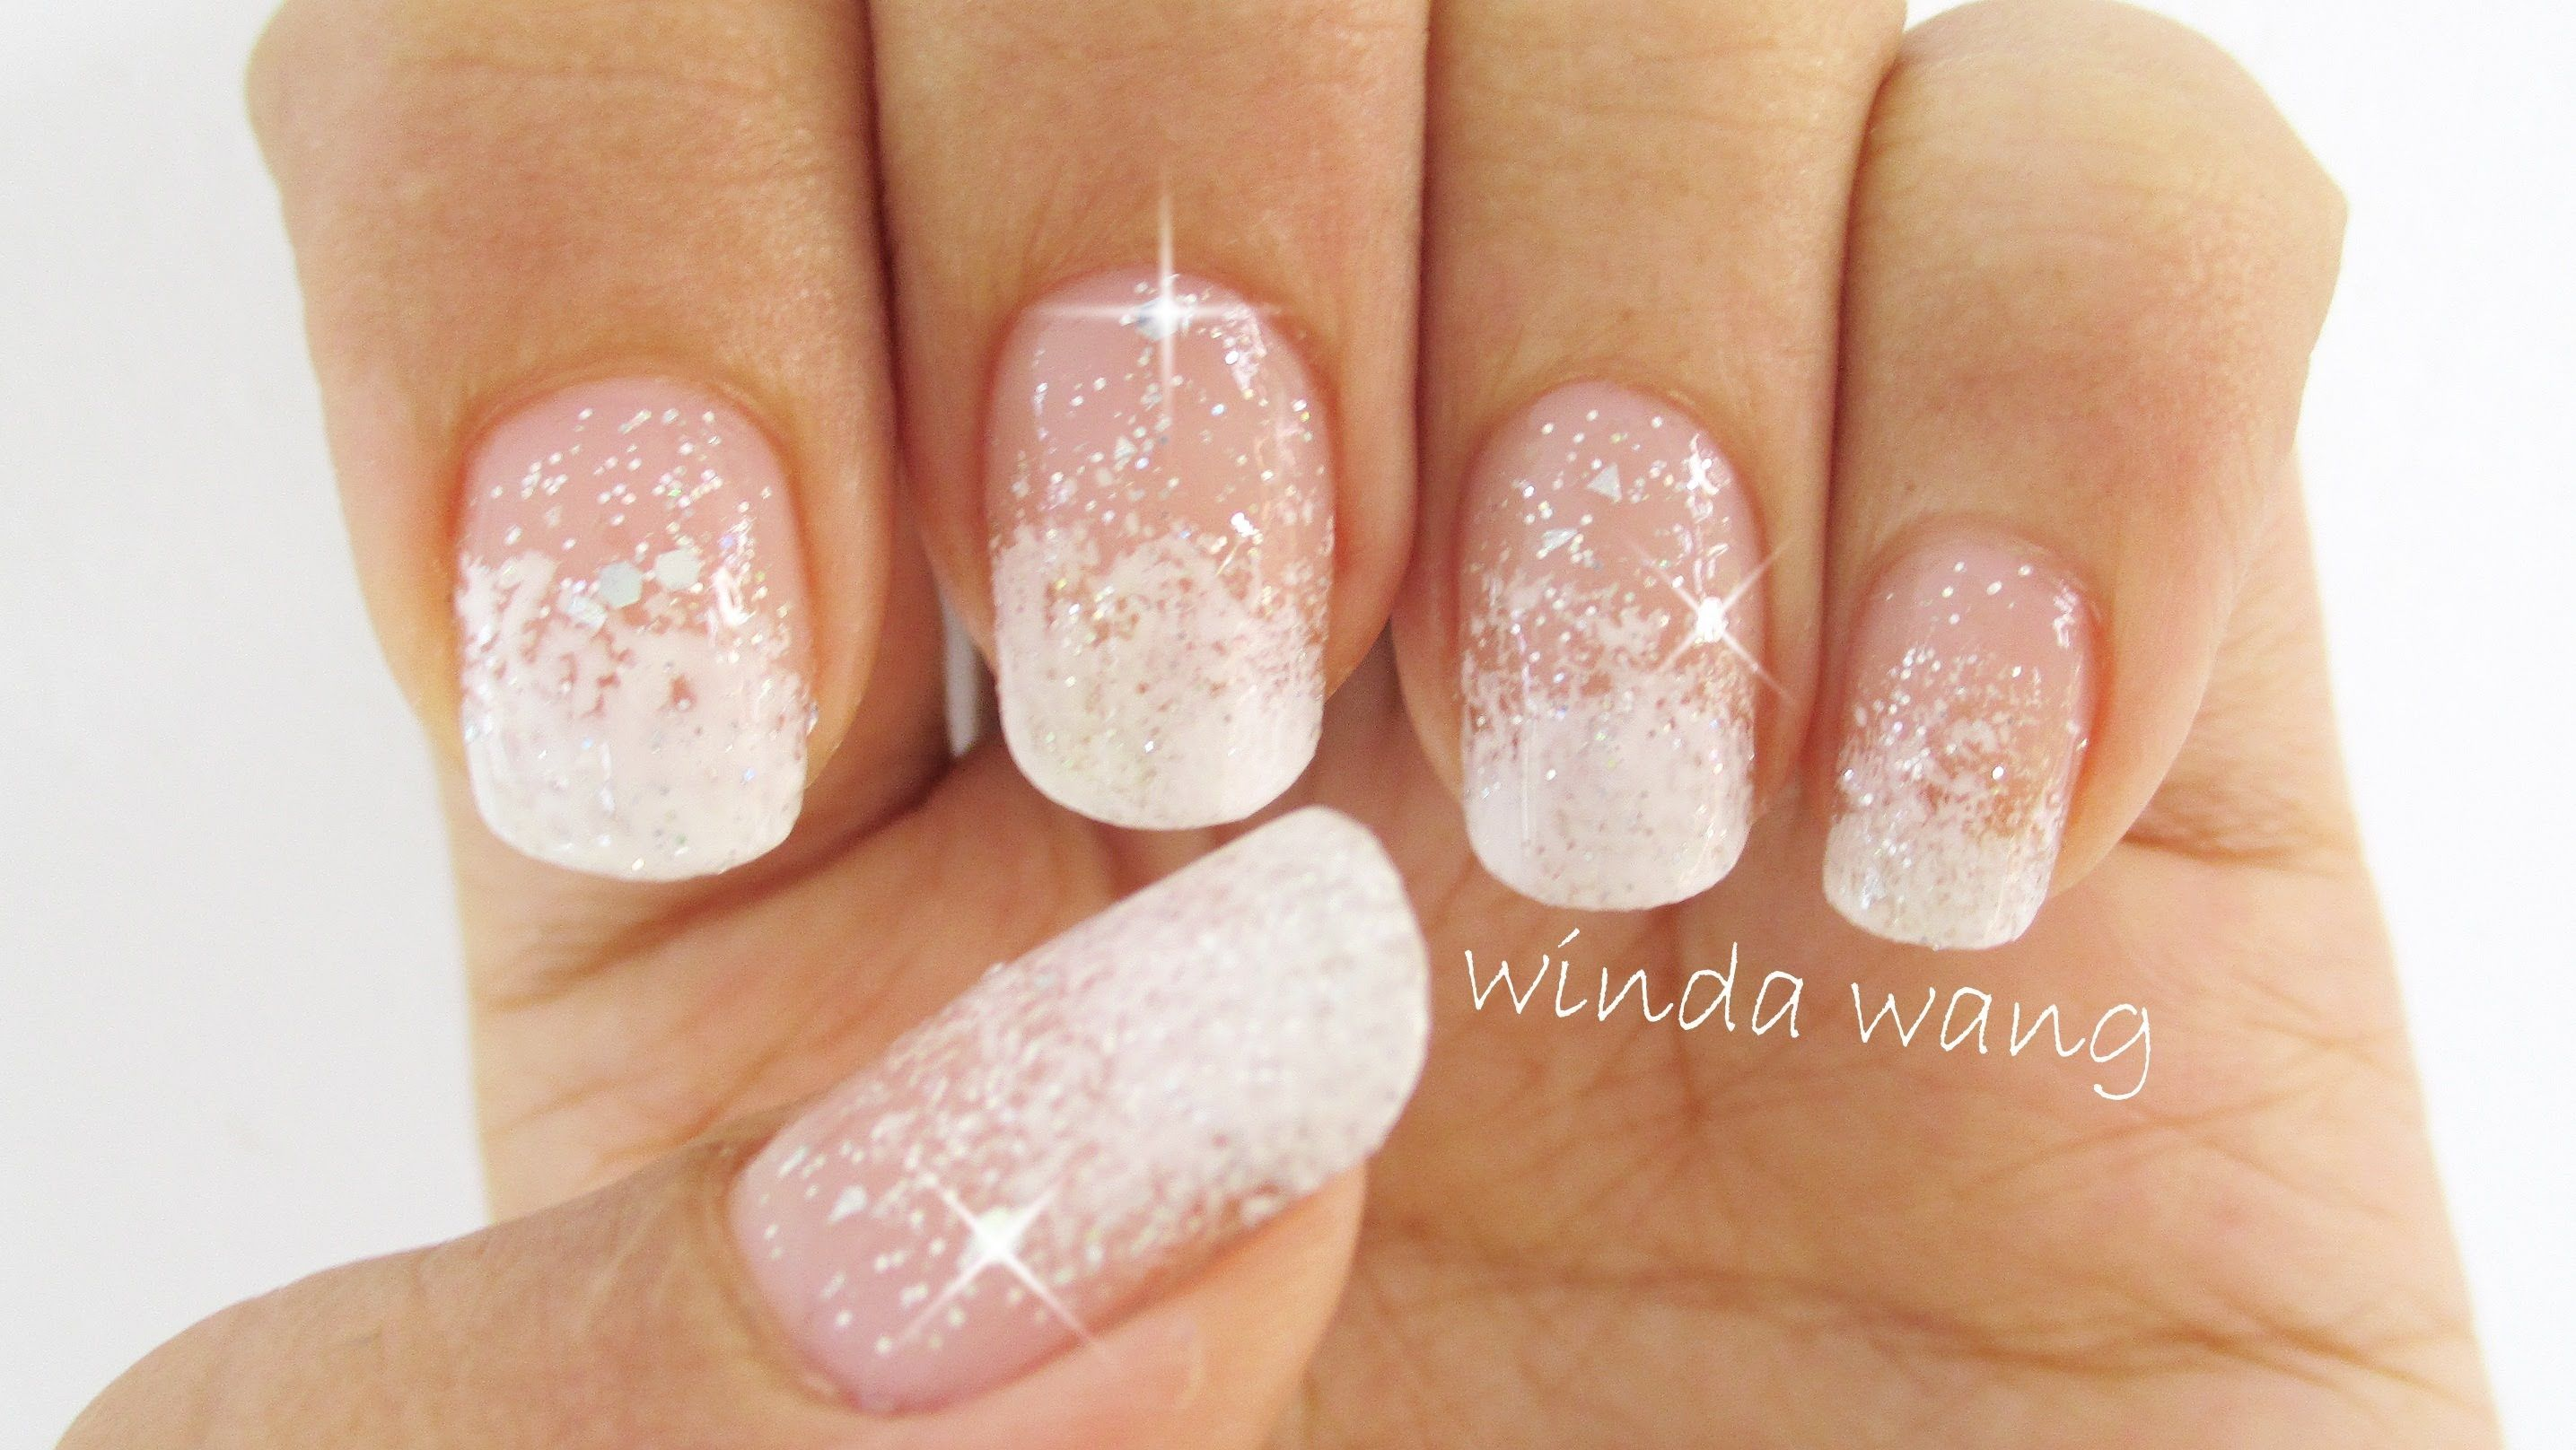 Nail Designs For Wedding Guest Google Search Wedding Nail Art Design Bridal Nail Art Simple Nail Art Designs